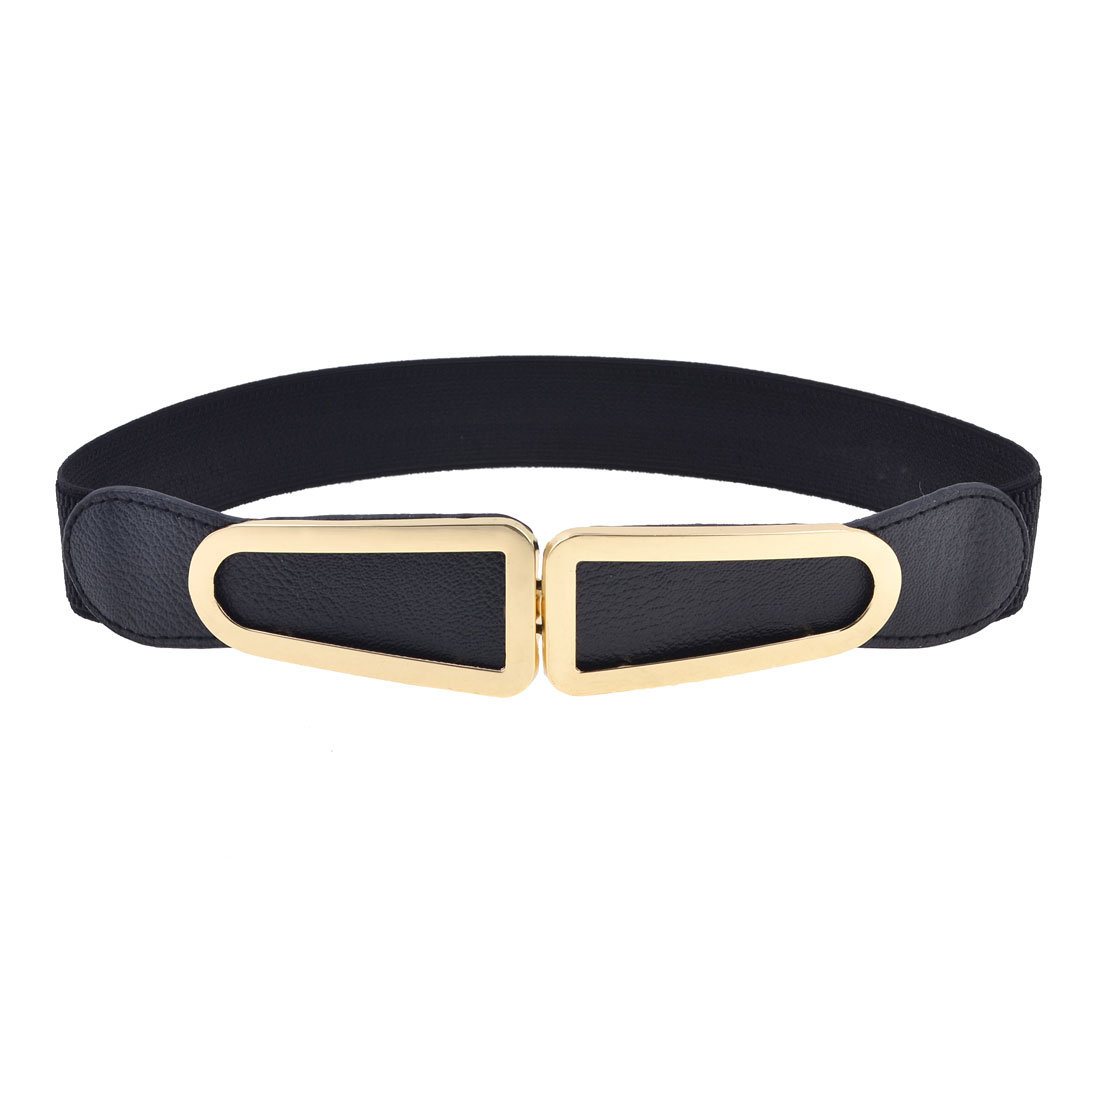 Black Elastic Band Copper Tone Single Pin Buckle Waist Belt for Girls